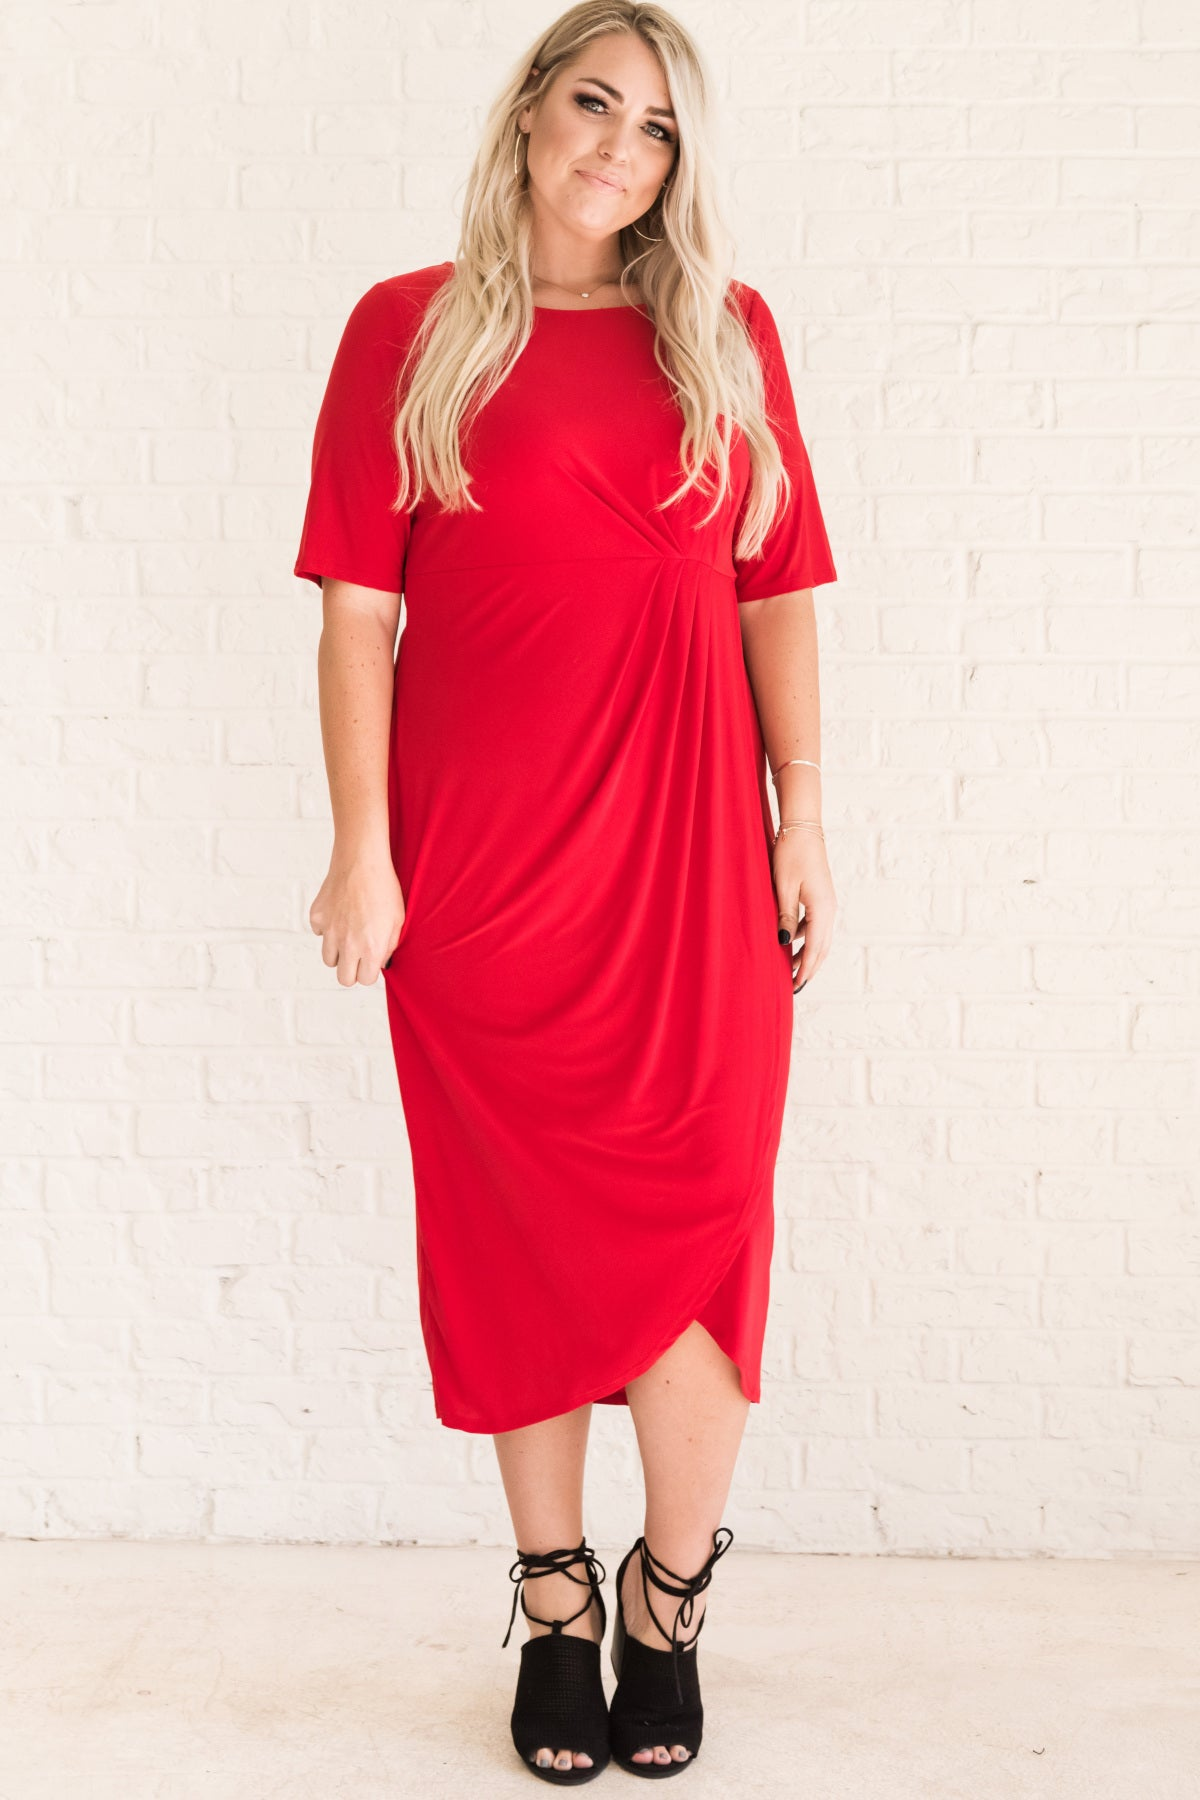 Red Long Wrap Plus Size Midi Winter Dresses for Office, Going Out, or Special Occasion